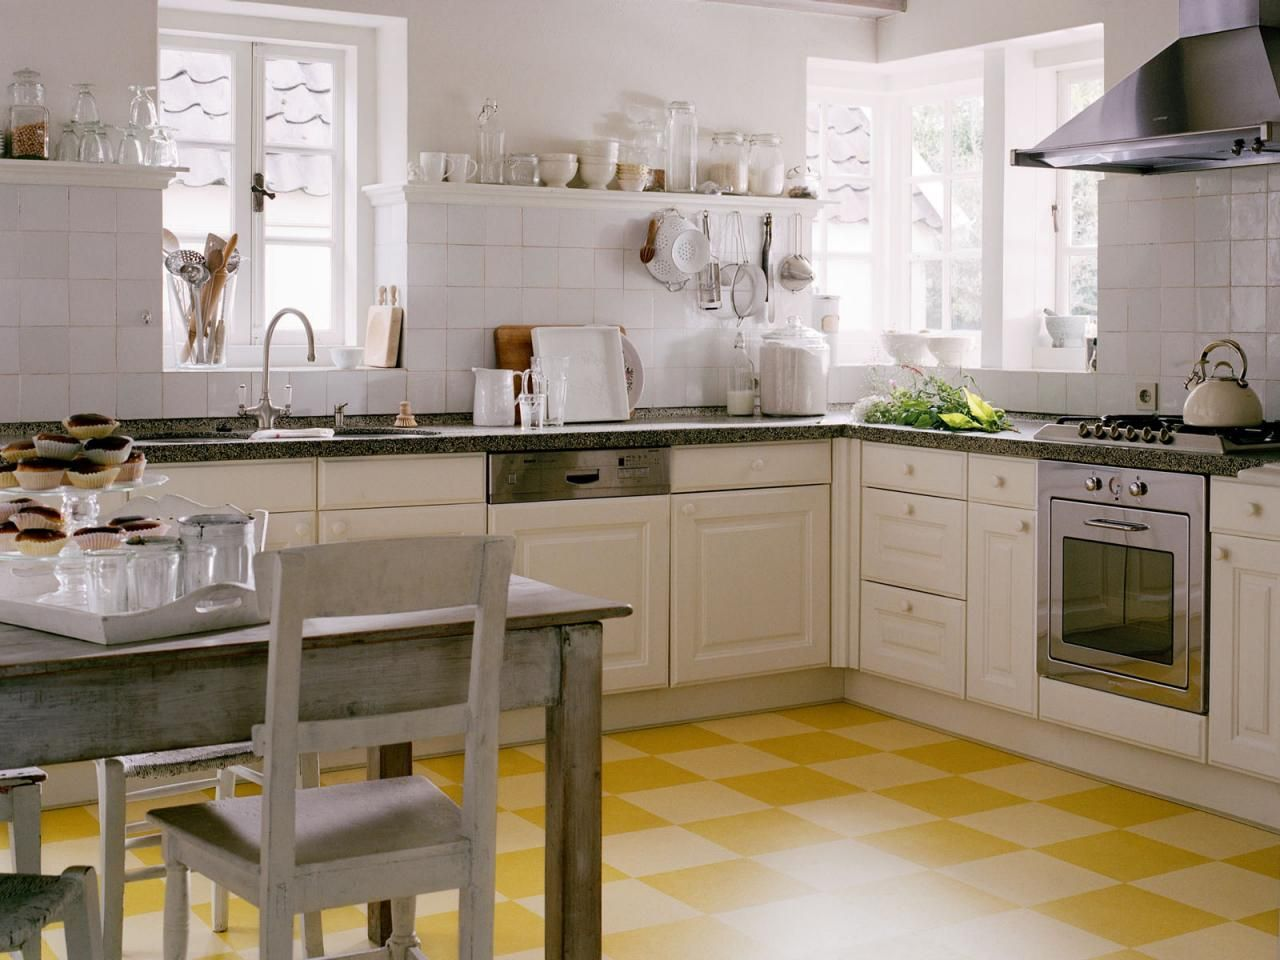 Retro Kitchen Flooring best 20+ linoleum kitchen floors ideas on pinterest | painted